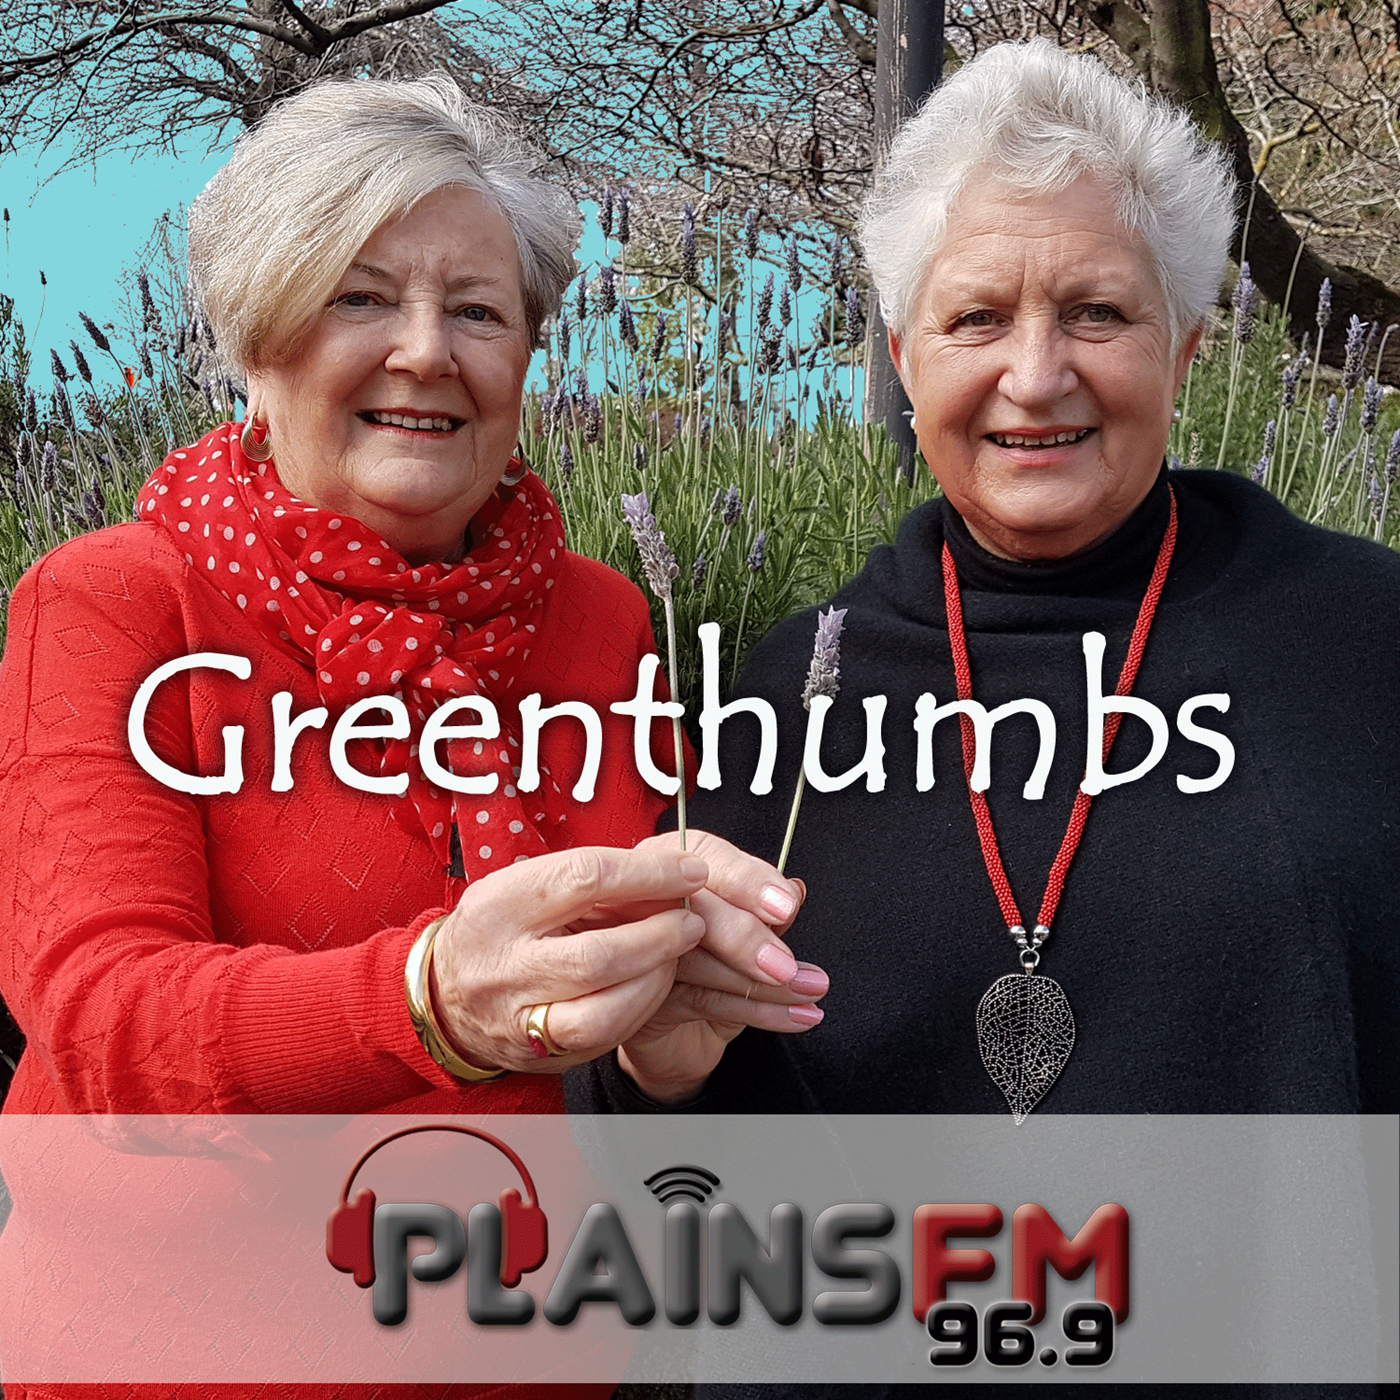 Greenthumbs in Canterbury